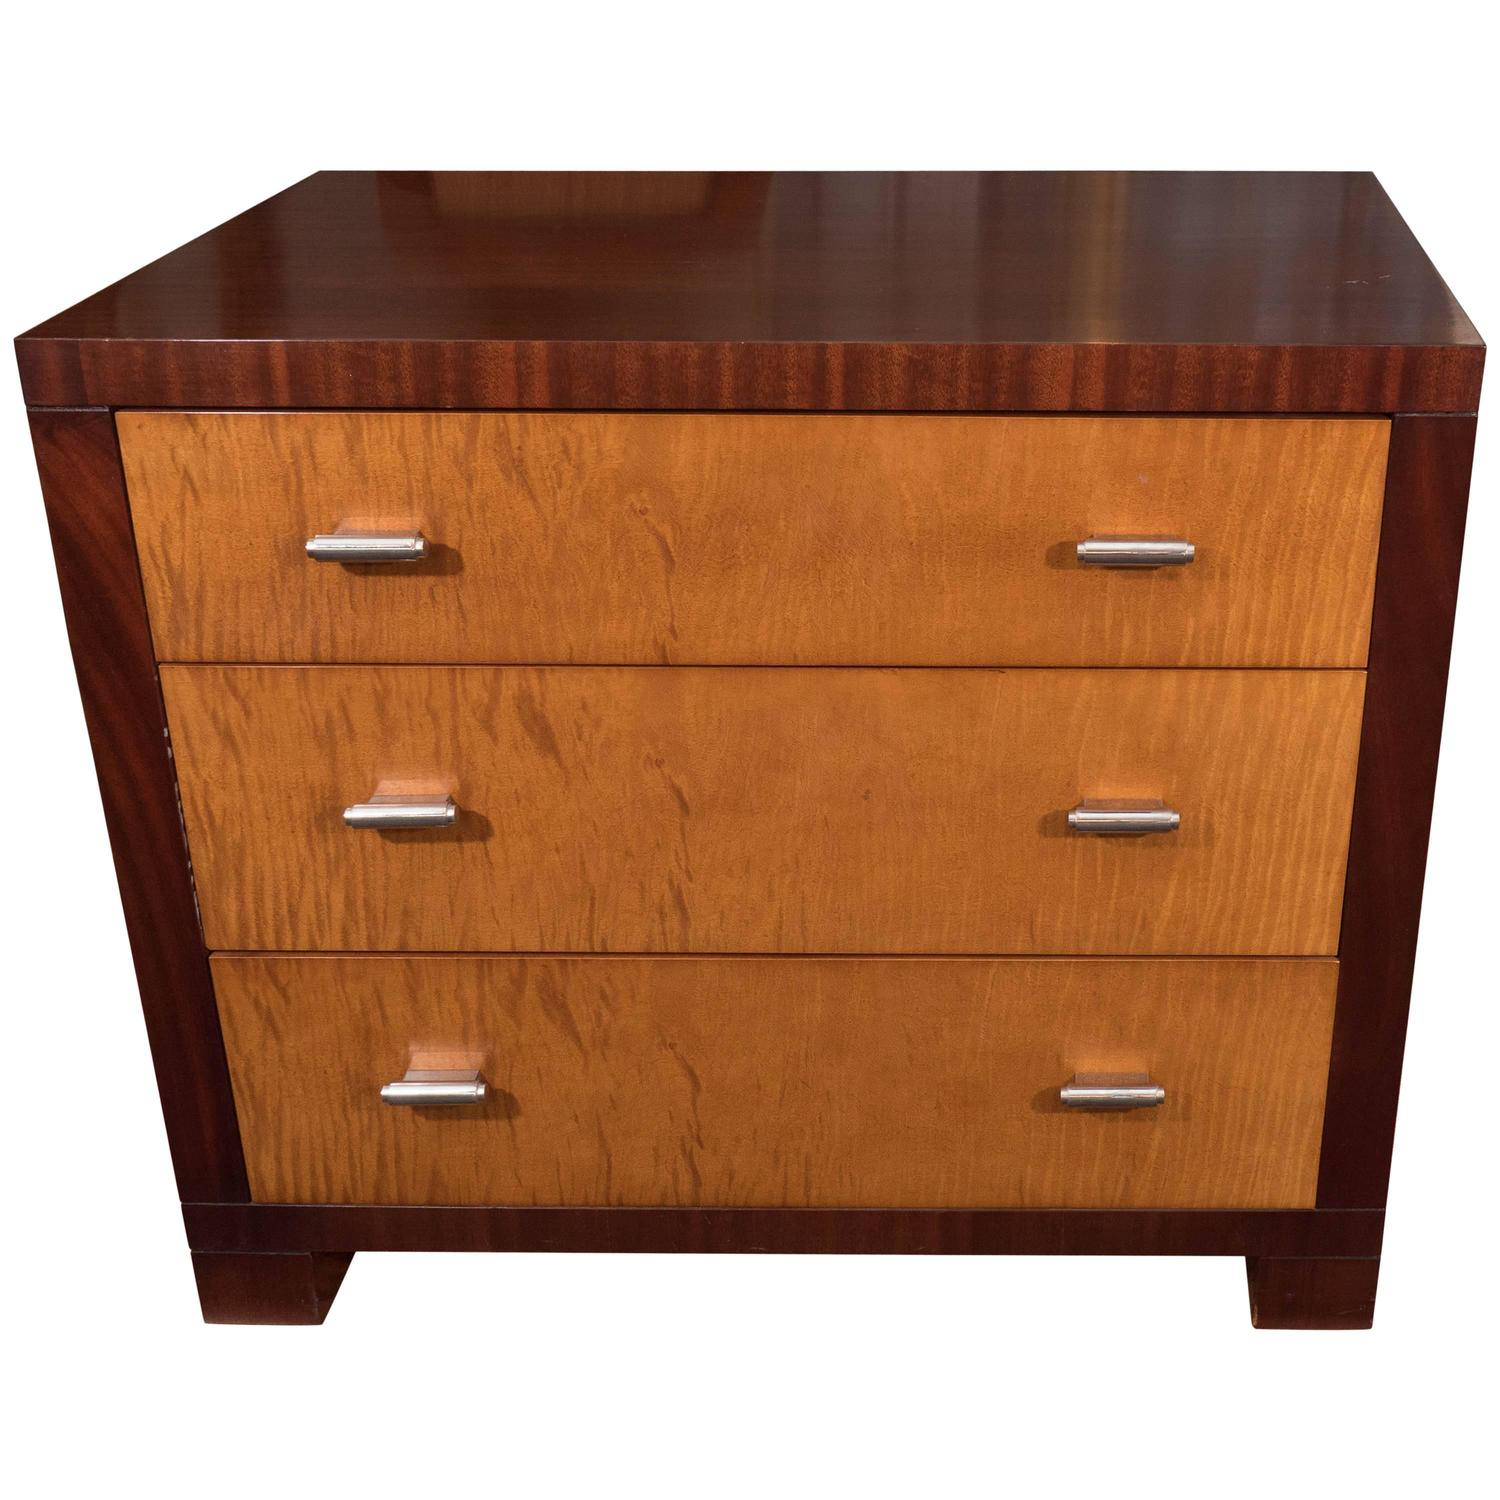 dressers and chests for sale widdicomb three drawer dresser and nightstand for 8830